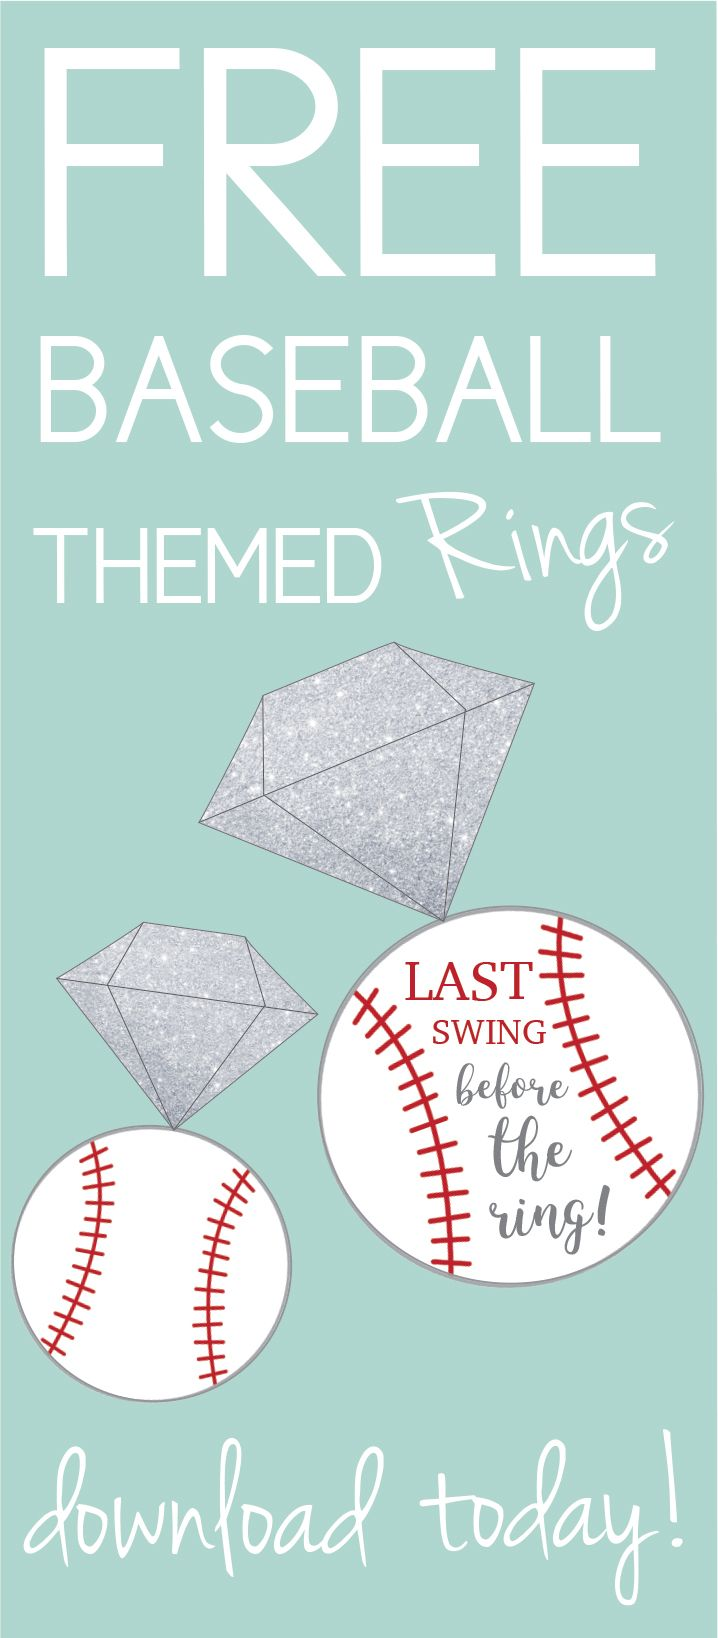 Last swing before the ring bachelorette party. Baseball theme. Click through to find matching games, favors, thank you cards, inserts, decor, and more. Or shop our 1000+ designs for all of life's journeys. Weddings, birthdays, new babies, anniversaries, and more. Only at Aesthetic Journeys